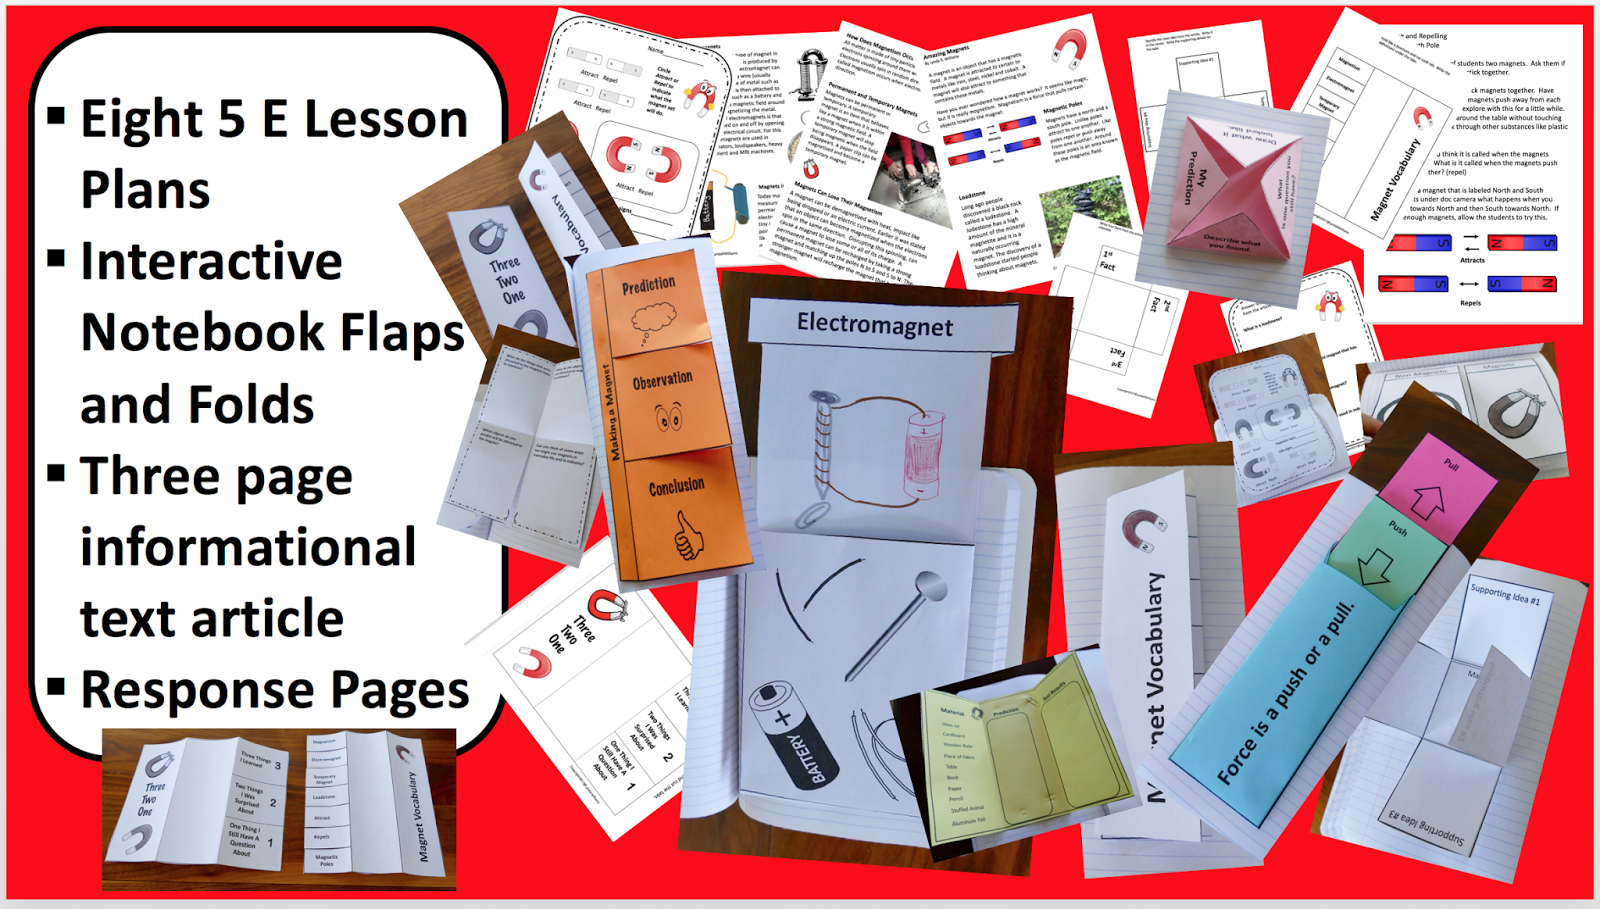 Teaching Science With Lynda Magnets And Interactive Notebooks Ngss Fun Squishy Circuits Notebook Ideas The Lessons Include What Items Attract To A Magnet Attracting Repelling North South Pole Reading Informational Text Lesson